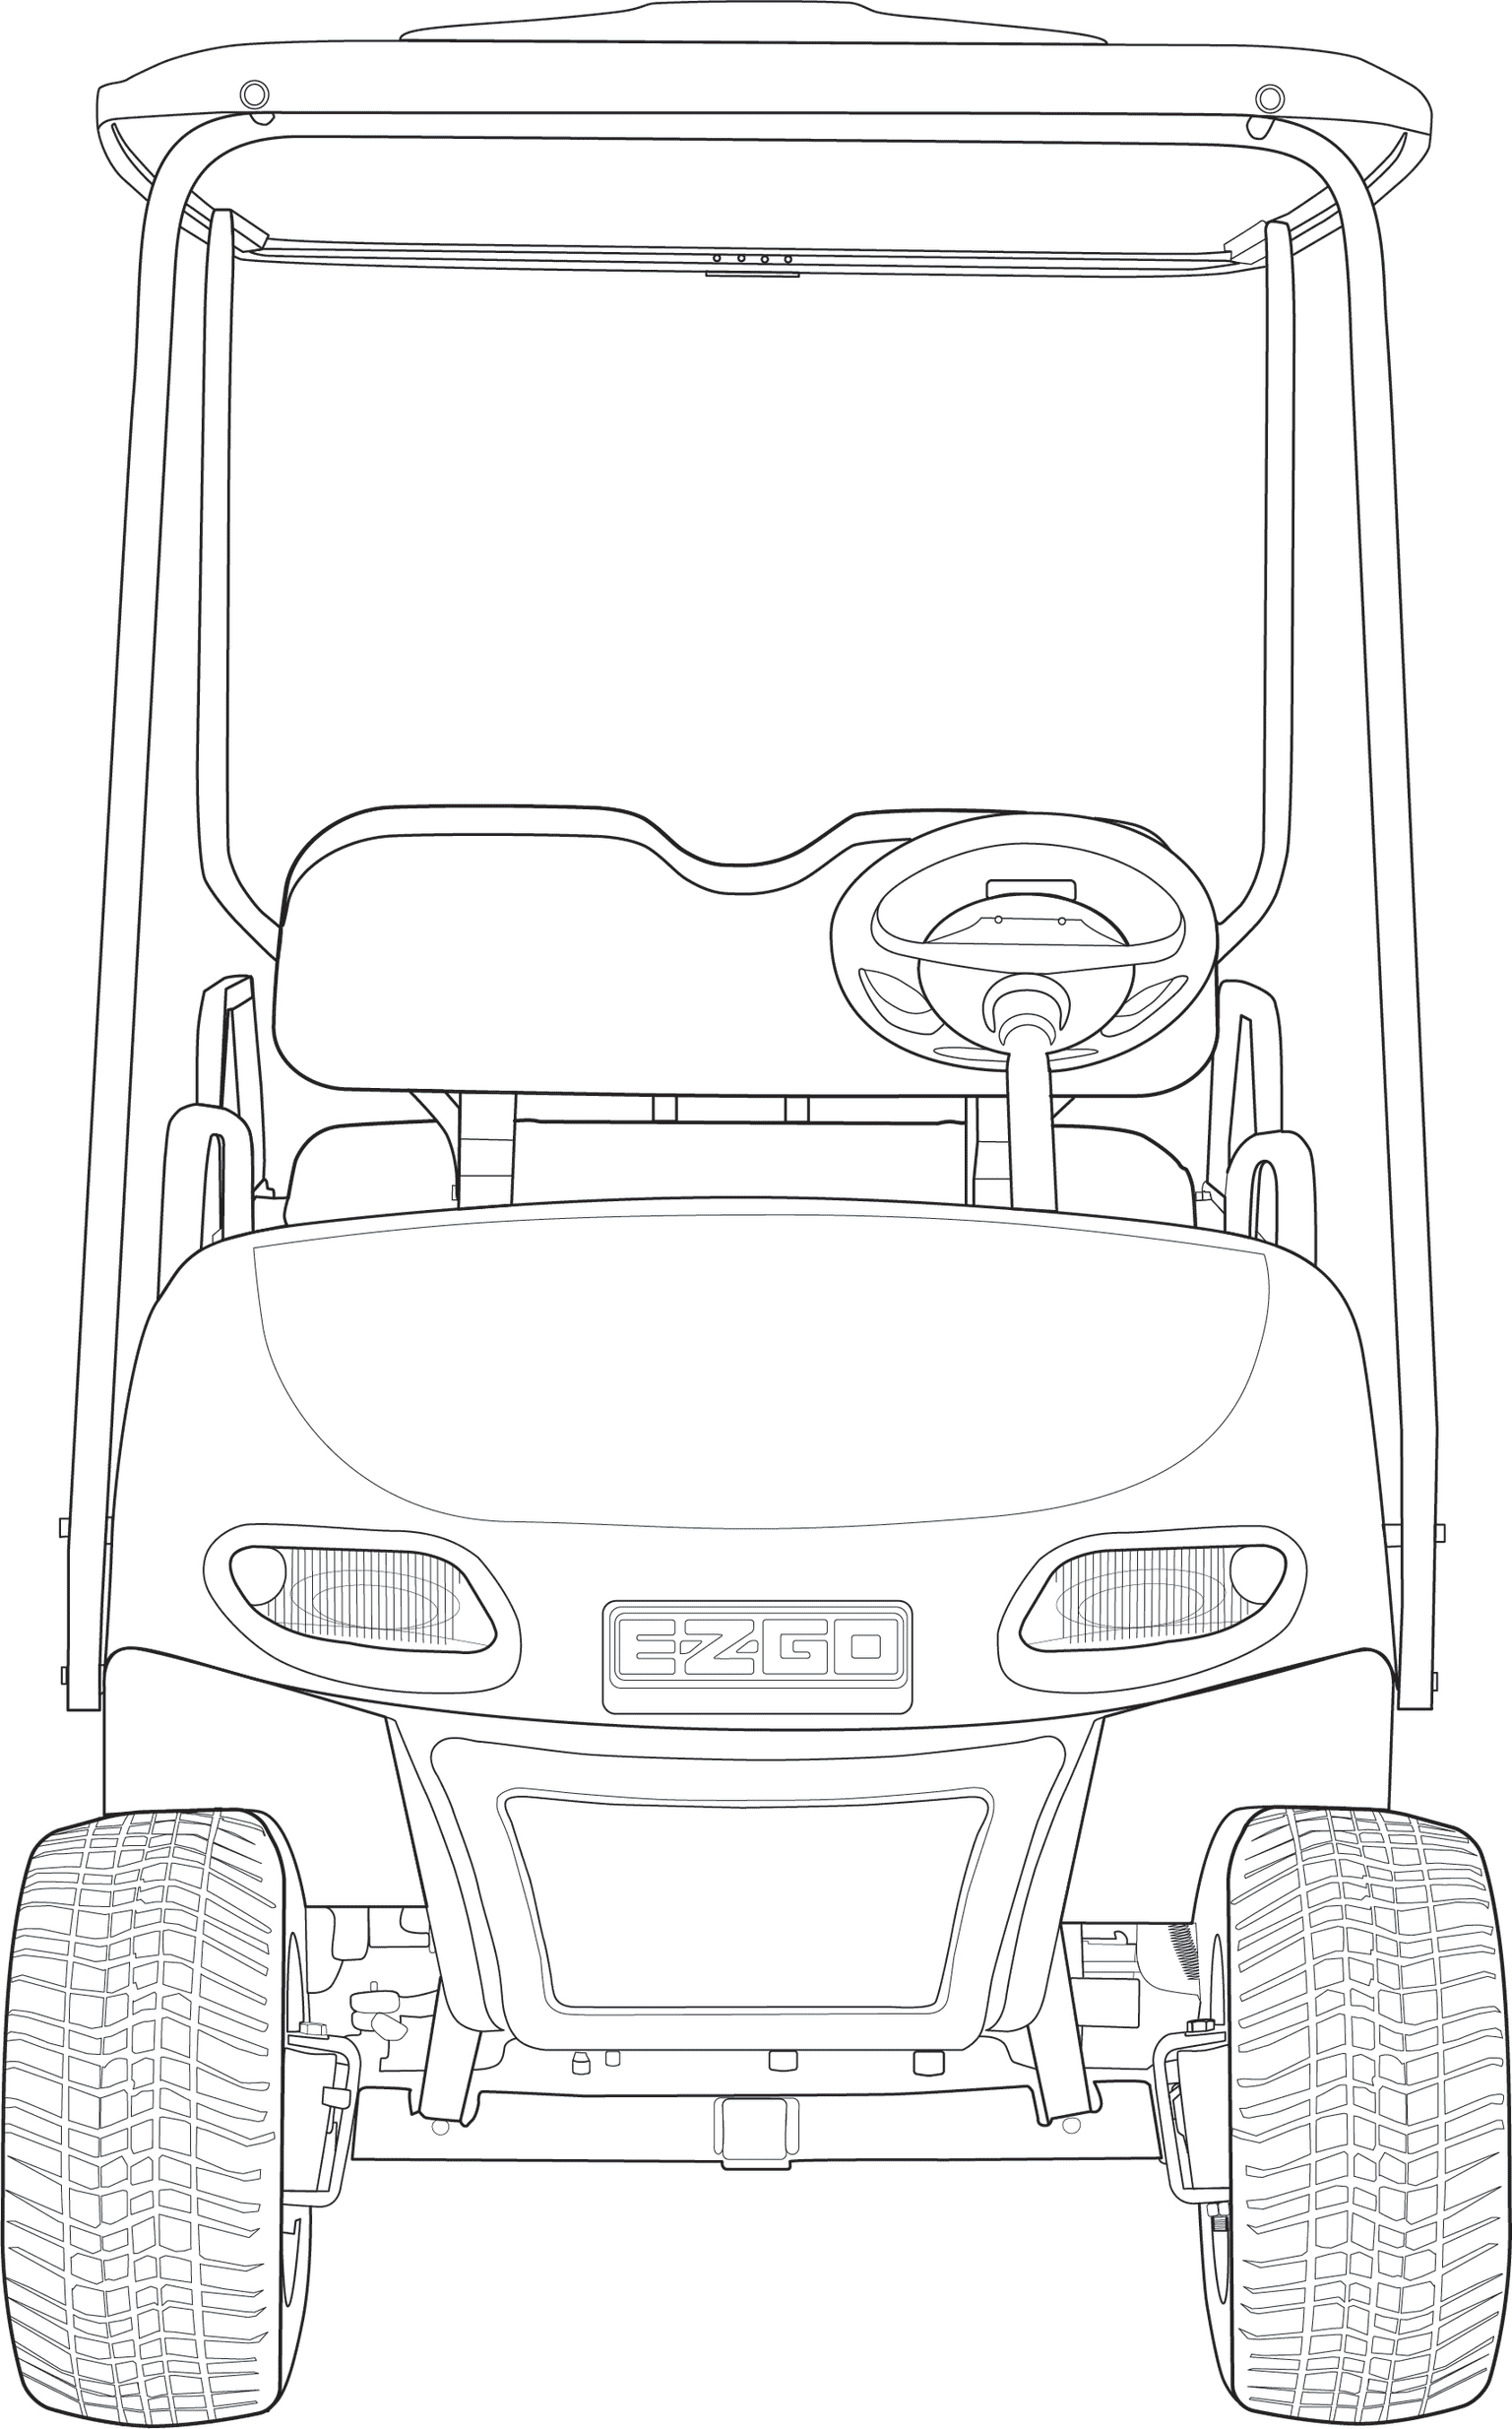 EZGO Pro Fit Schematic Drawings